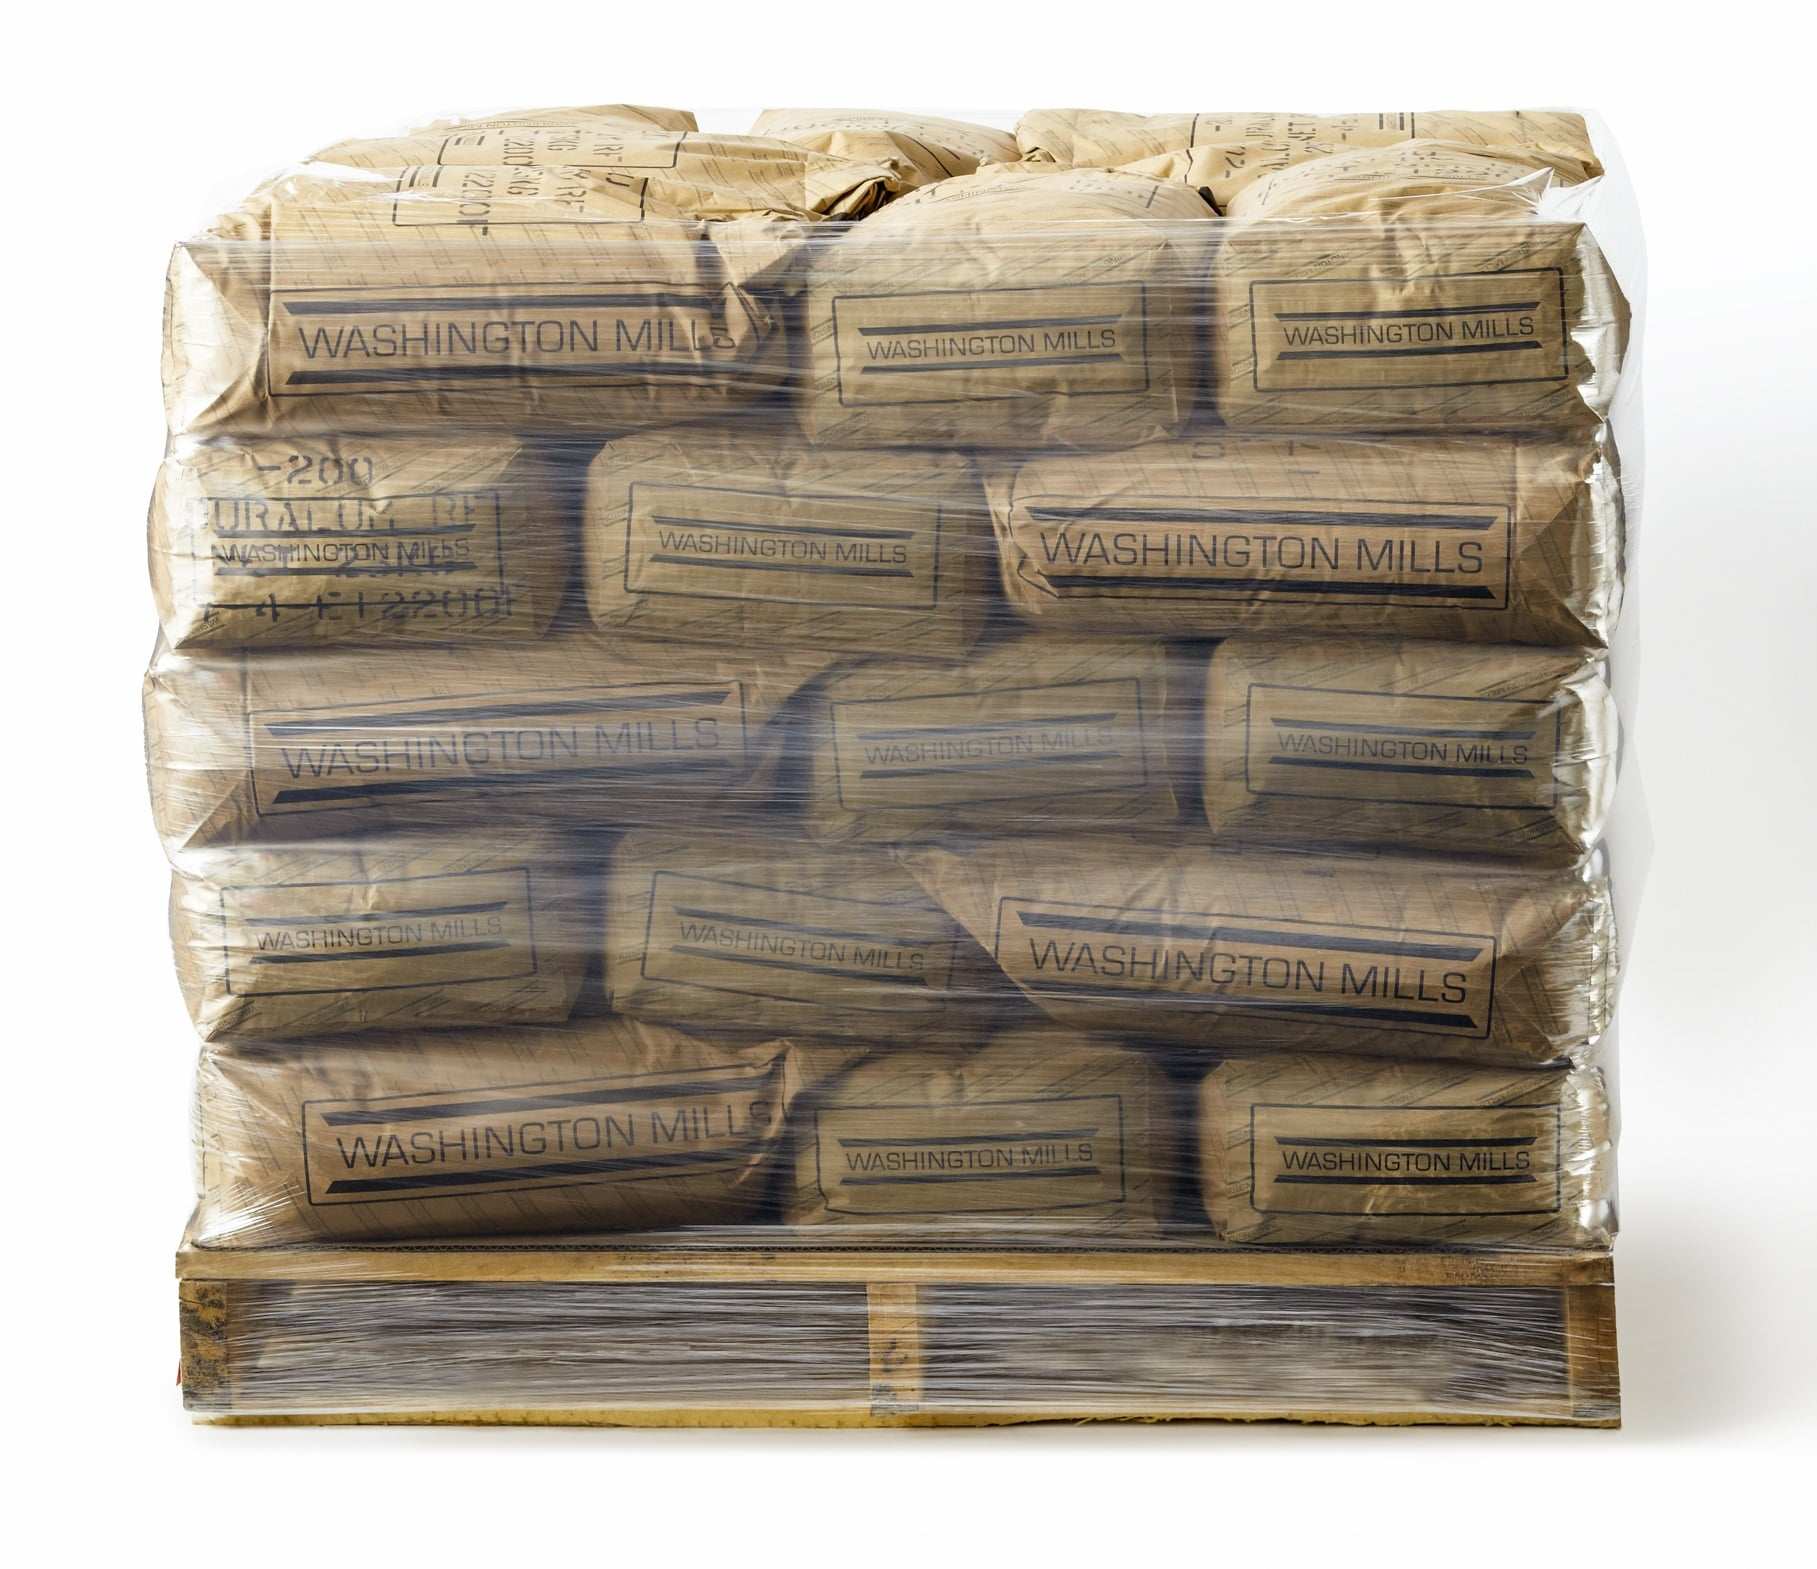 Pallet of Brown Washington Mills 50lb bags